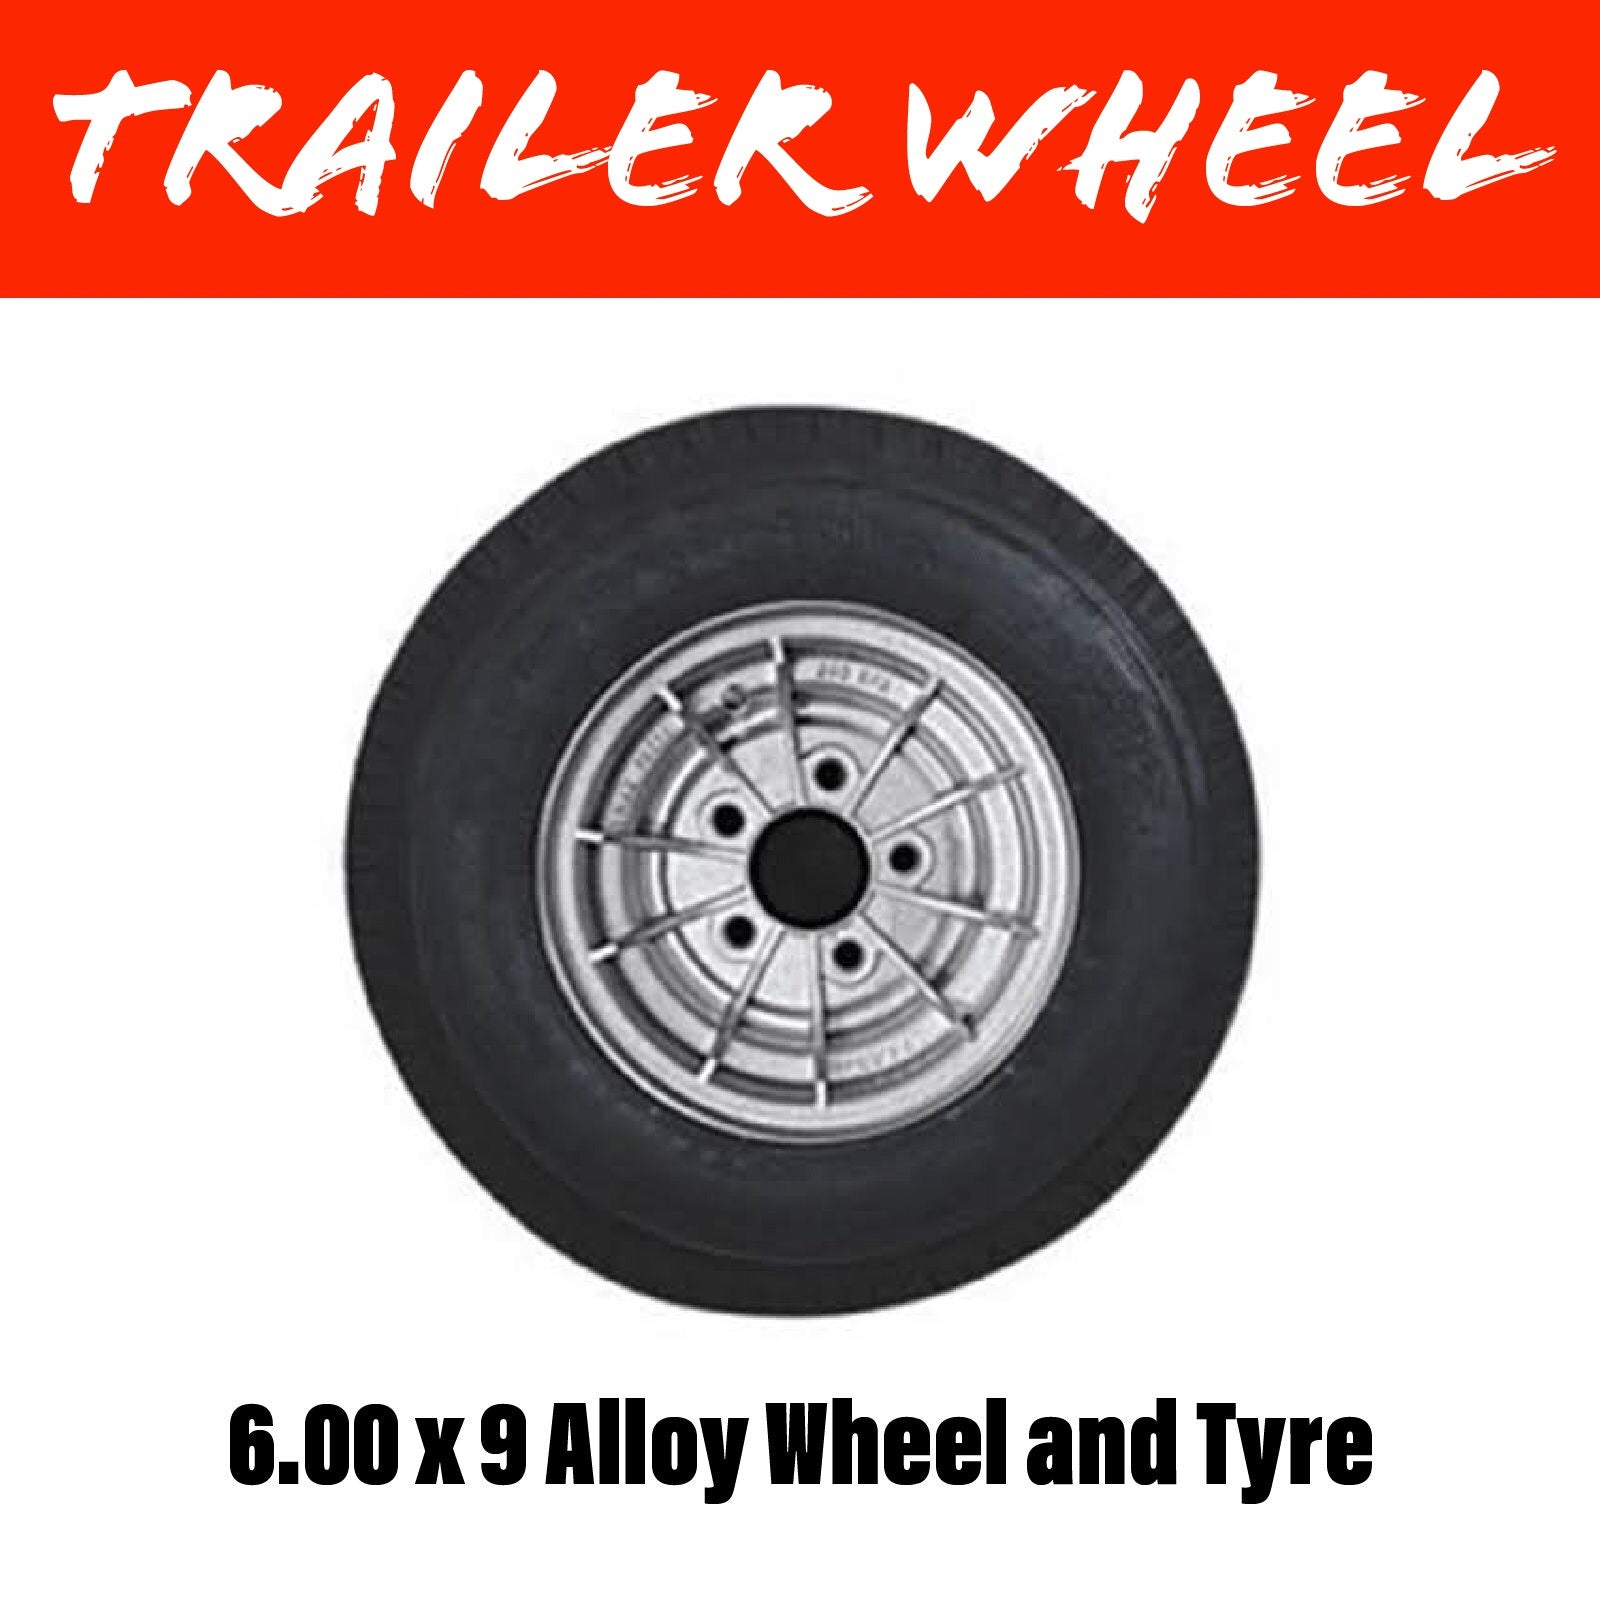 9 INCH ALLOY WHEEL AND 6.00X9 TYRE